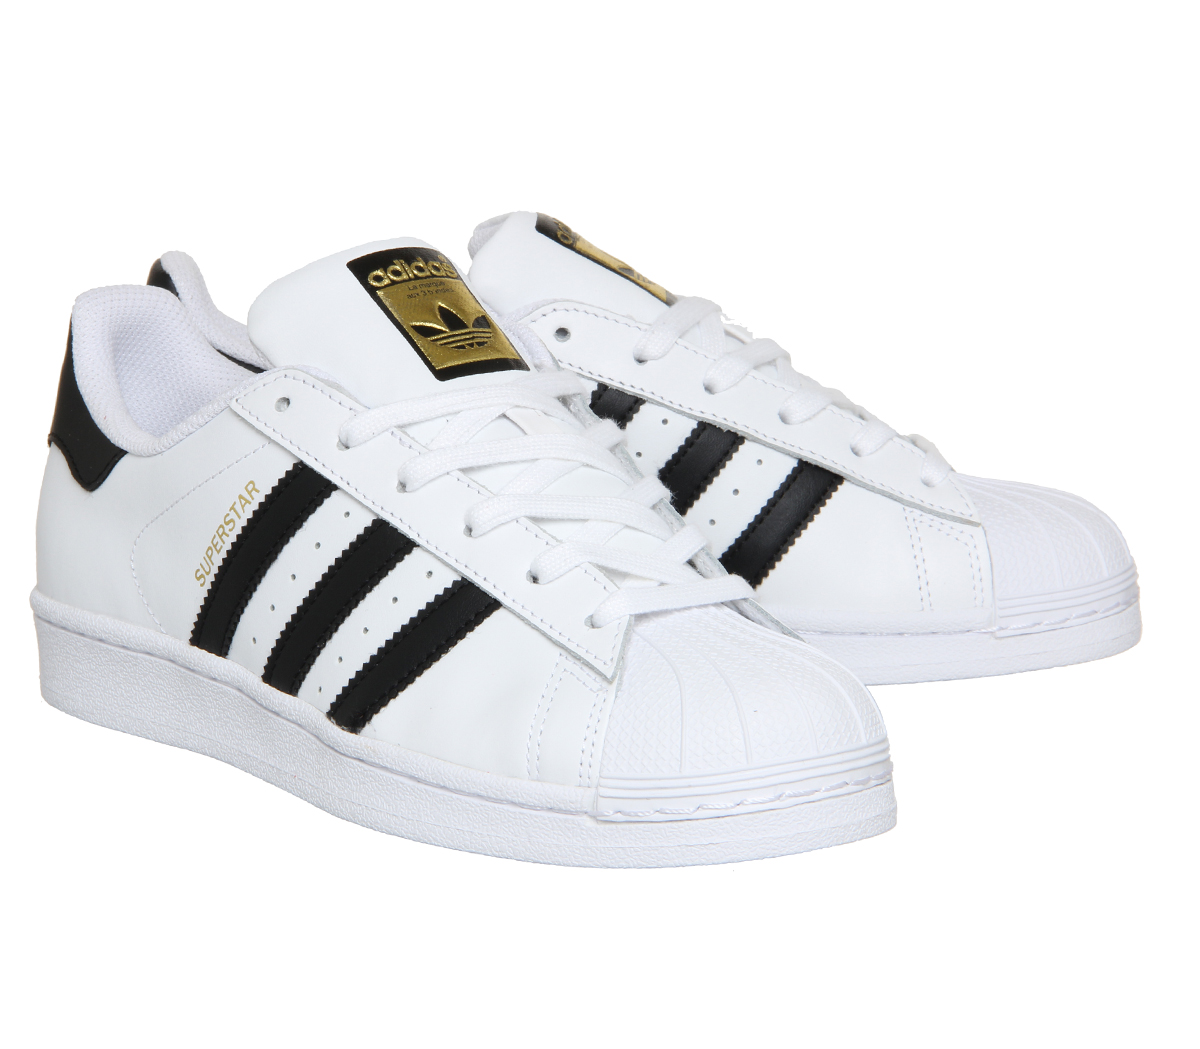 ... image is loading womens adidas superstar white black foundation  trainers shoes